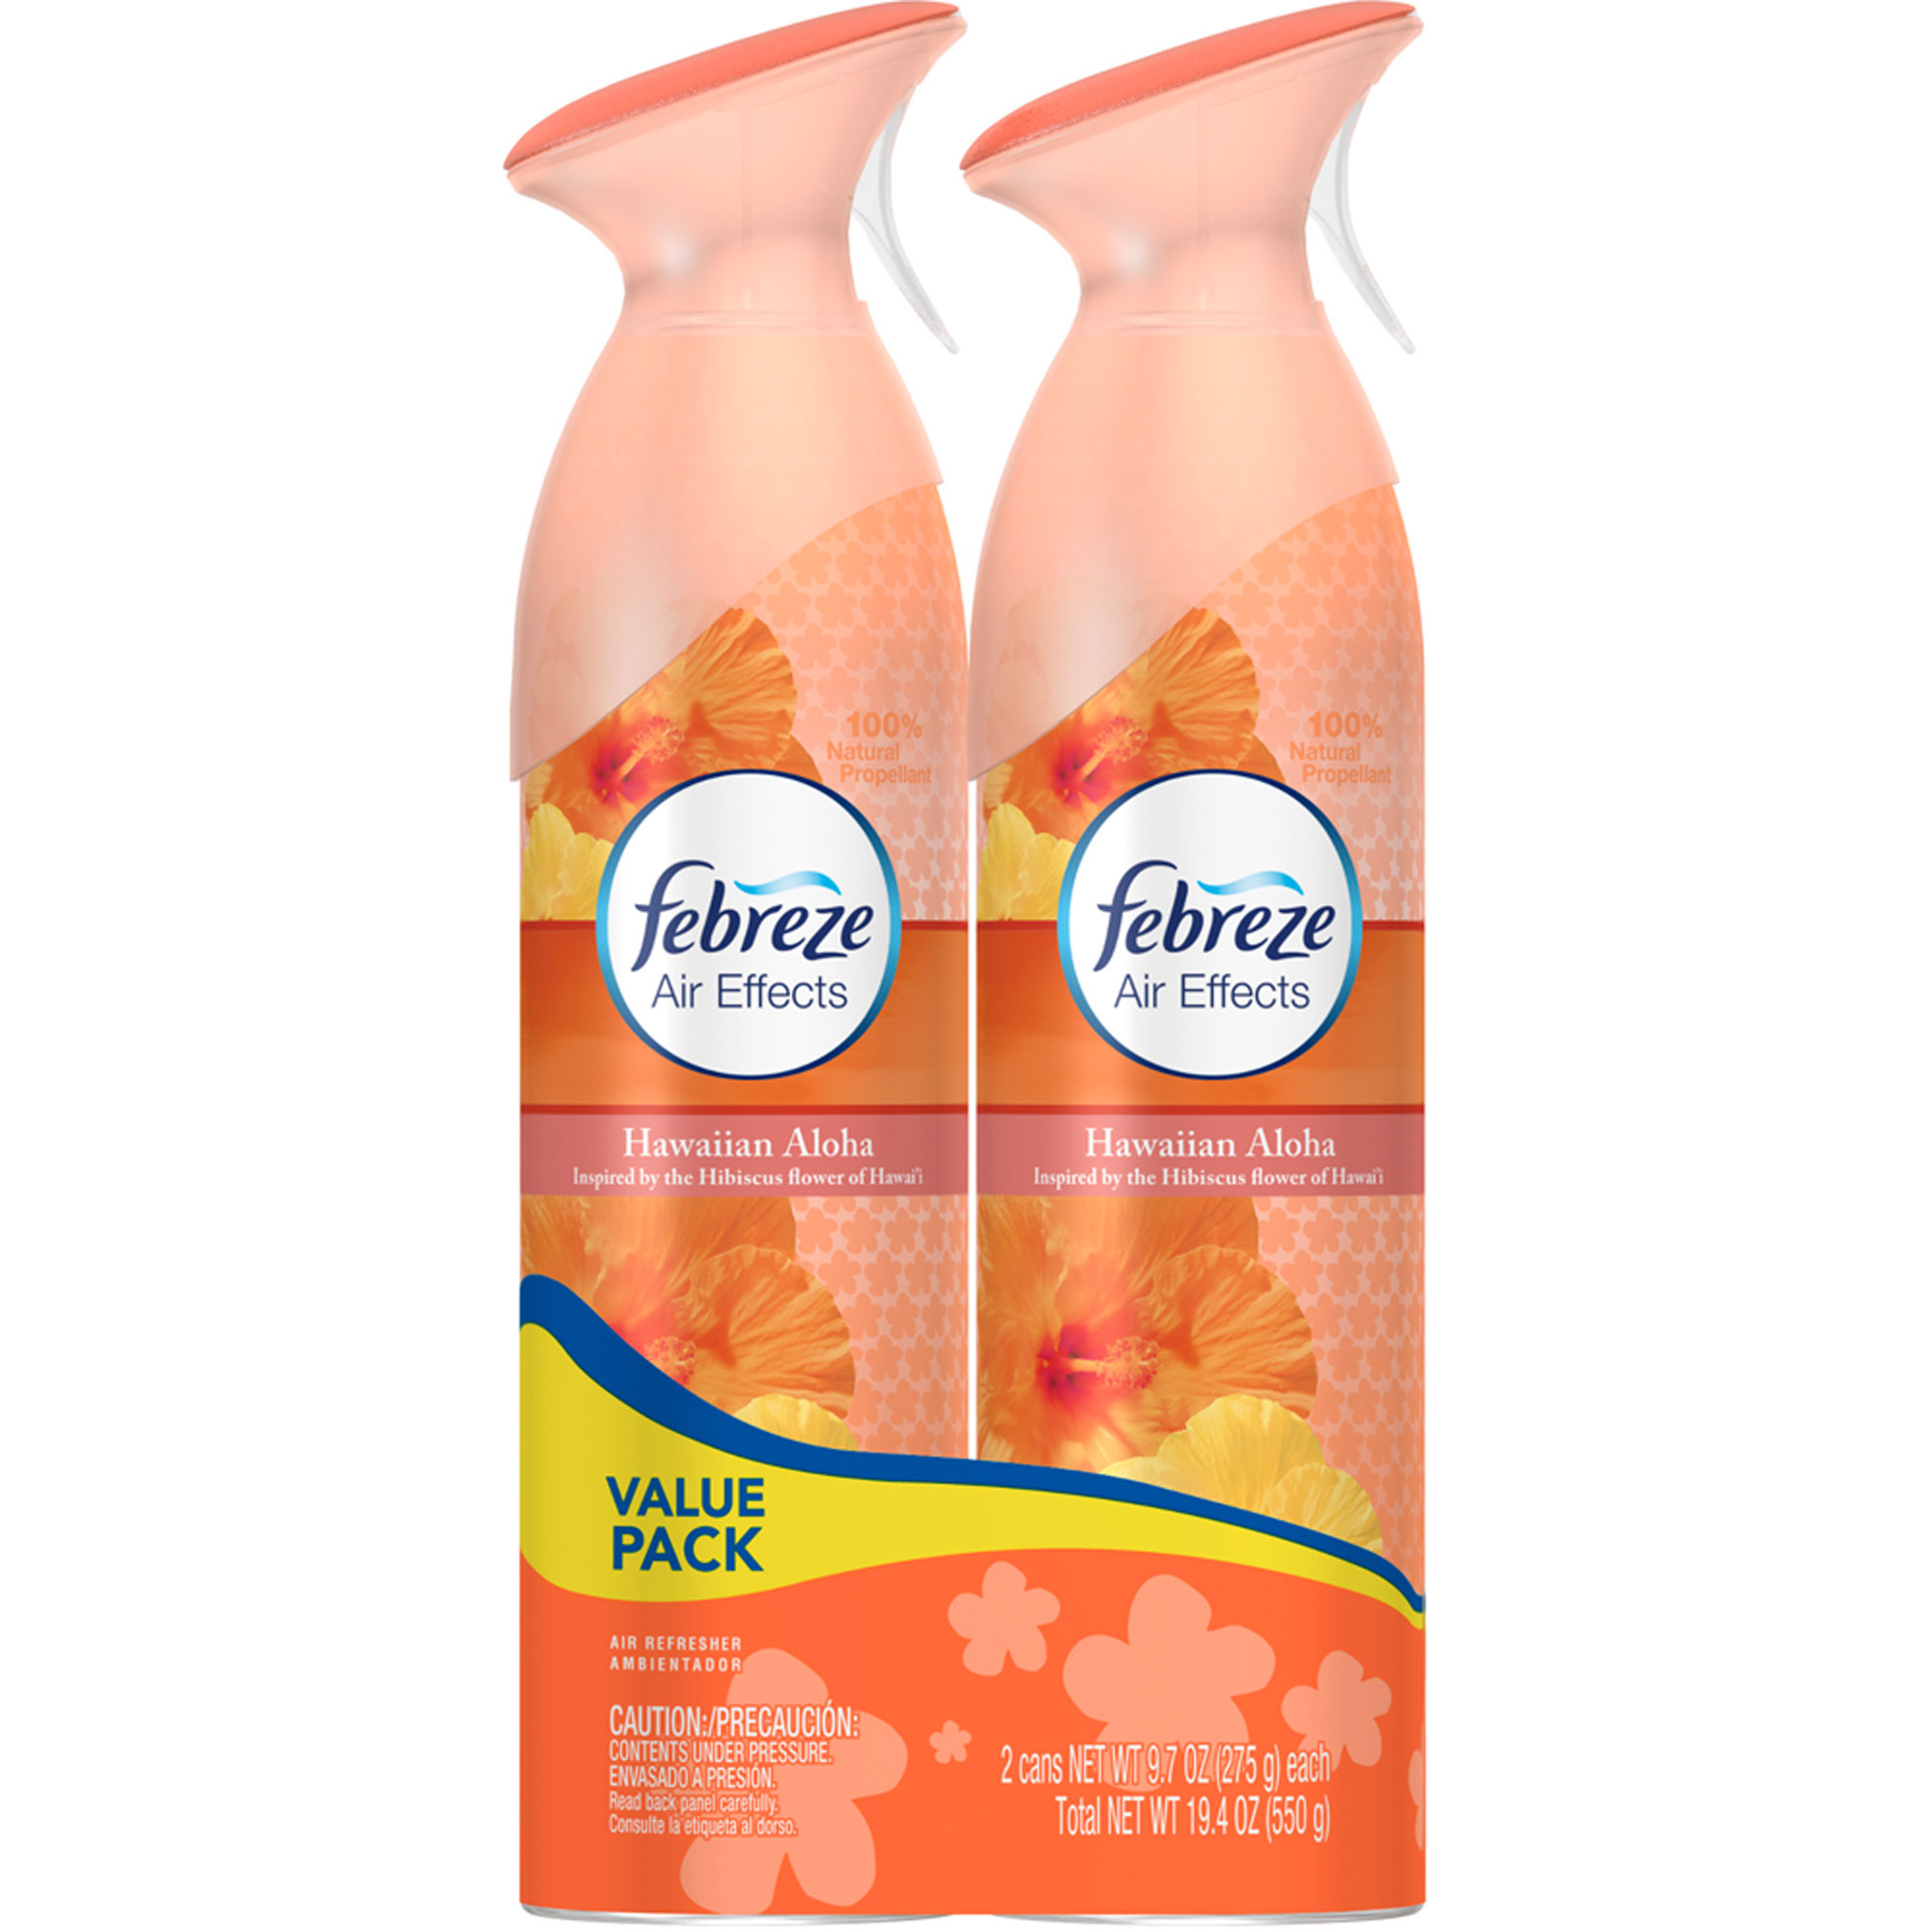 Febreze Air Effects Hawaiian Aloha Air Freshener, 9.7 oz, 2 count